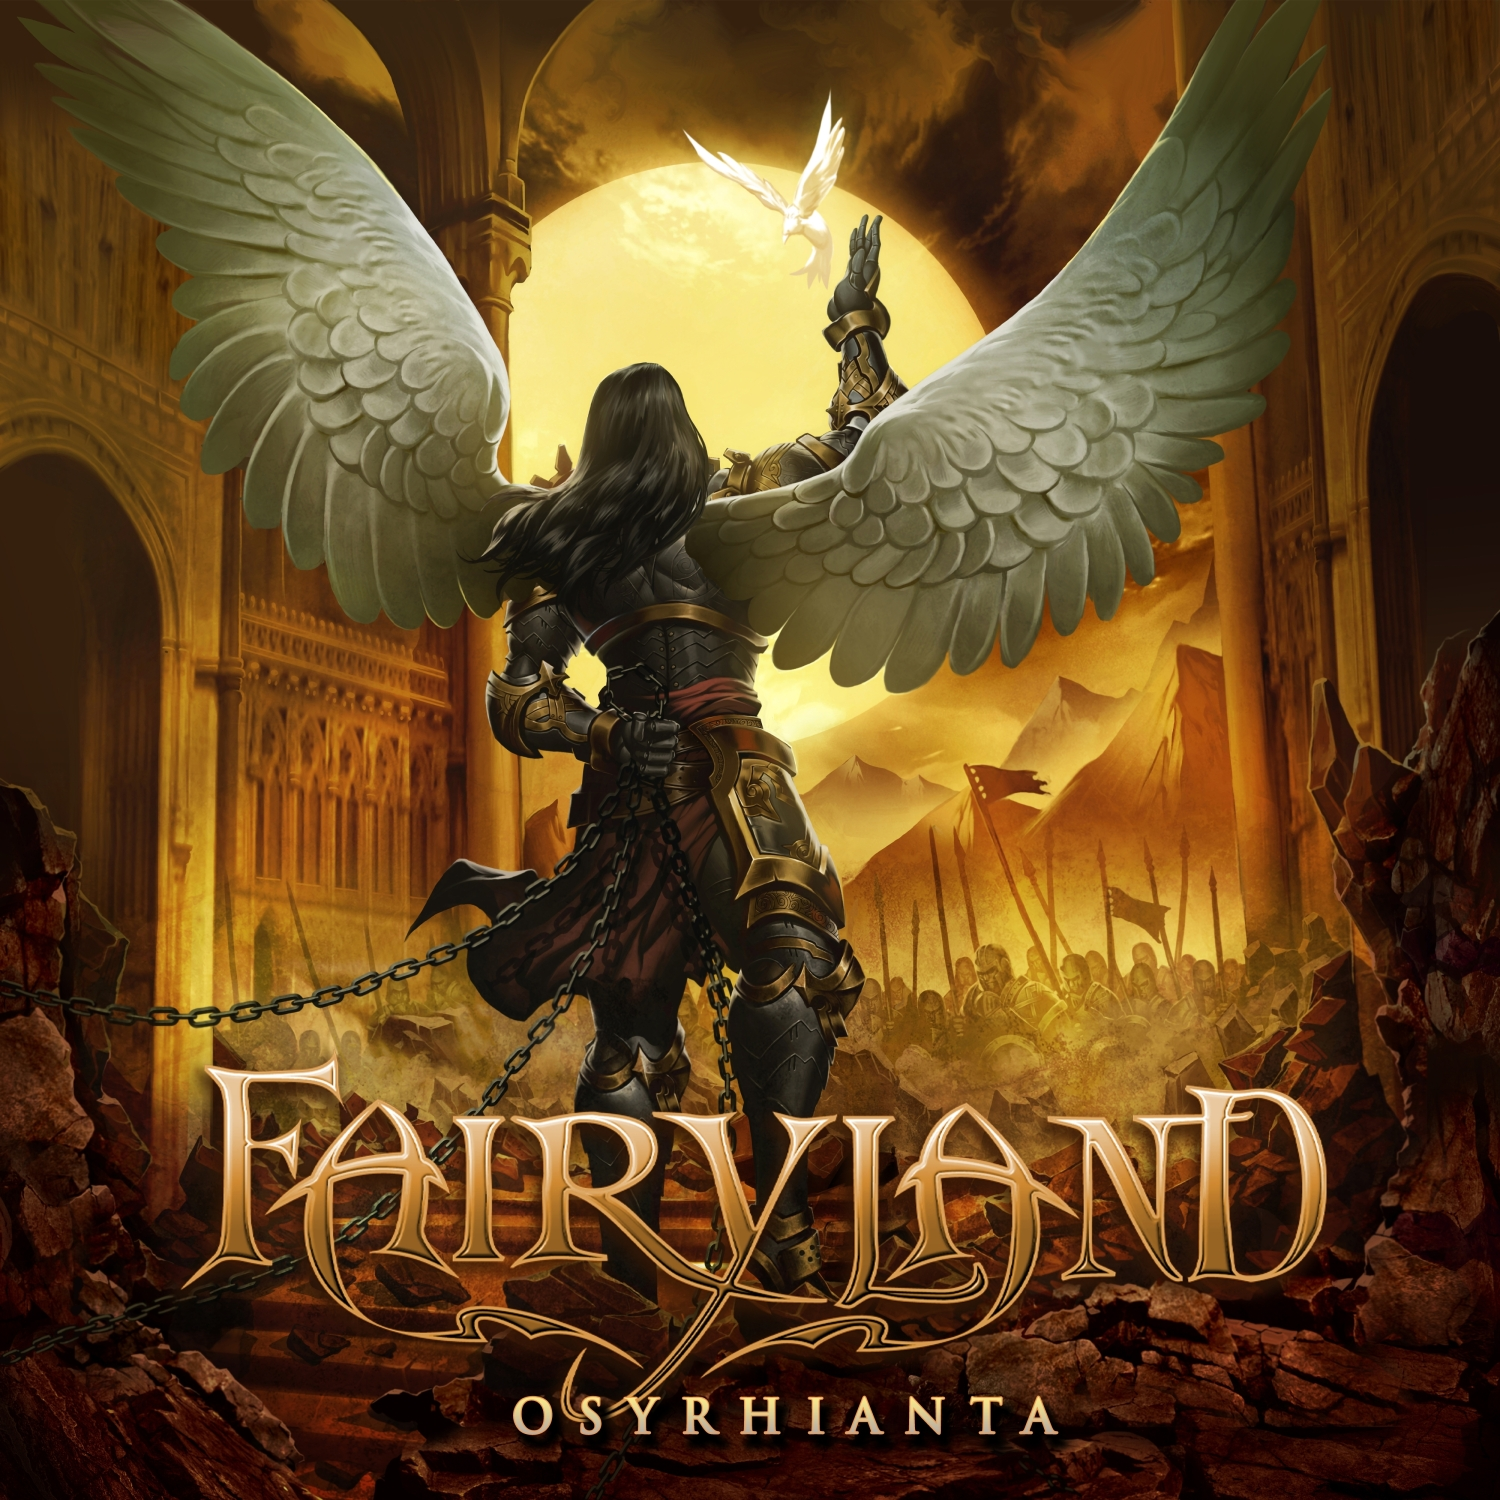 fairyland-osyrhianta-ein-album-review